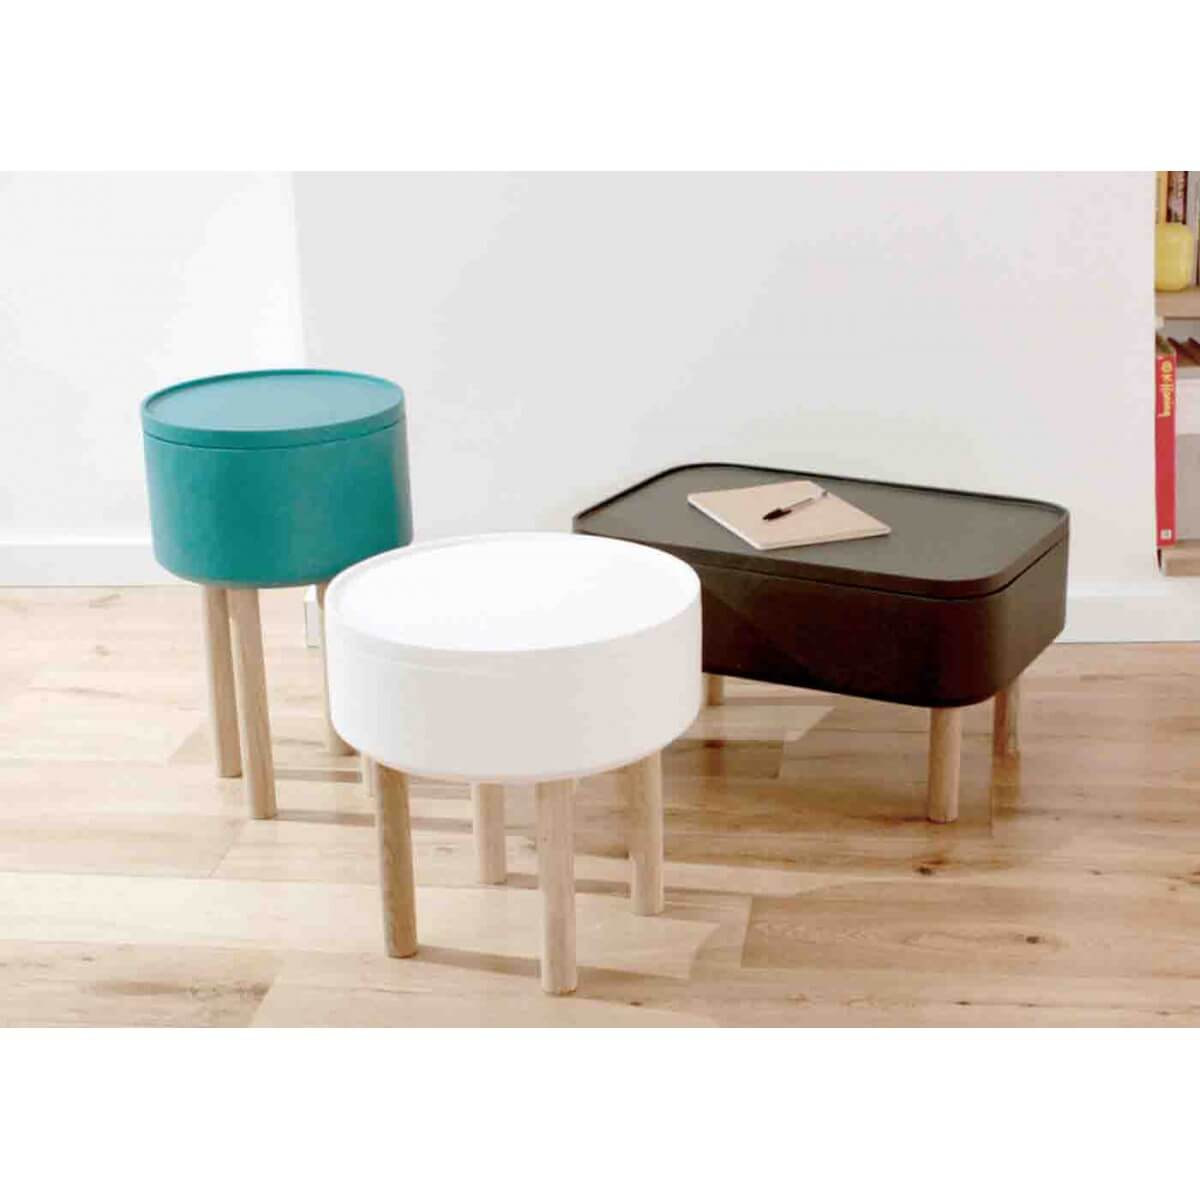 Table basse d 39 appoint grise en bois hat 1 sign e bellila for Table basse d appoint